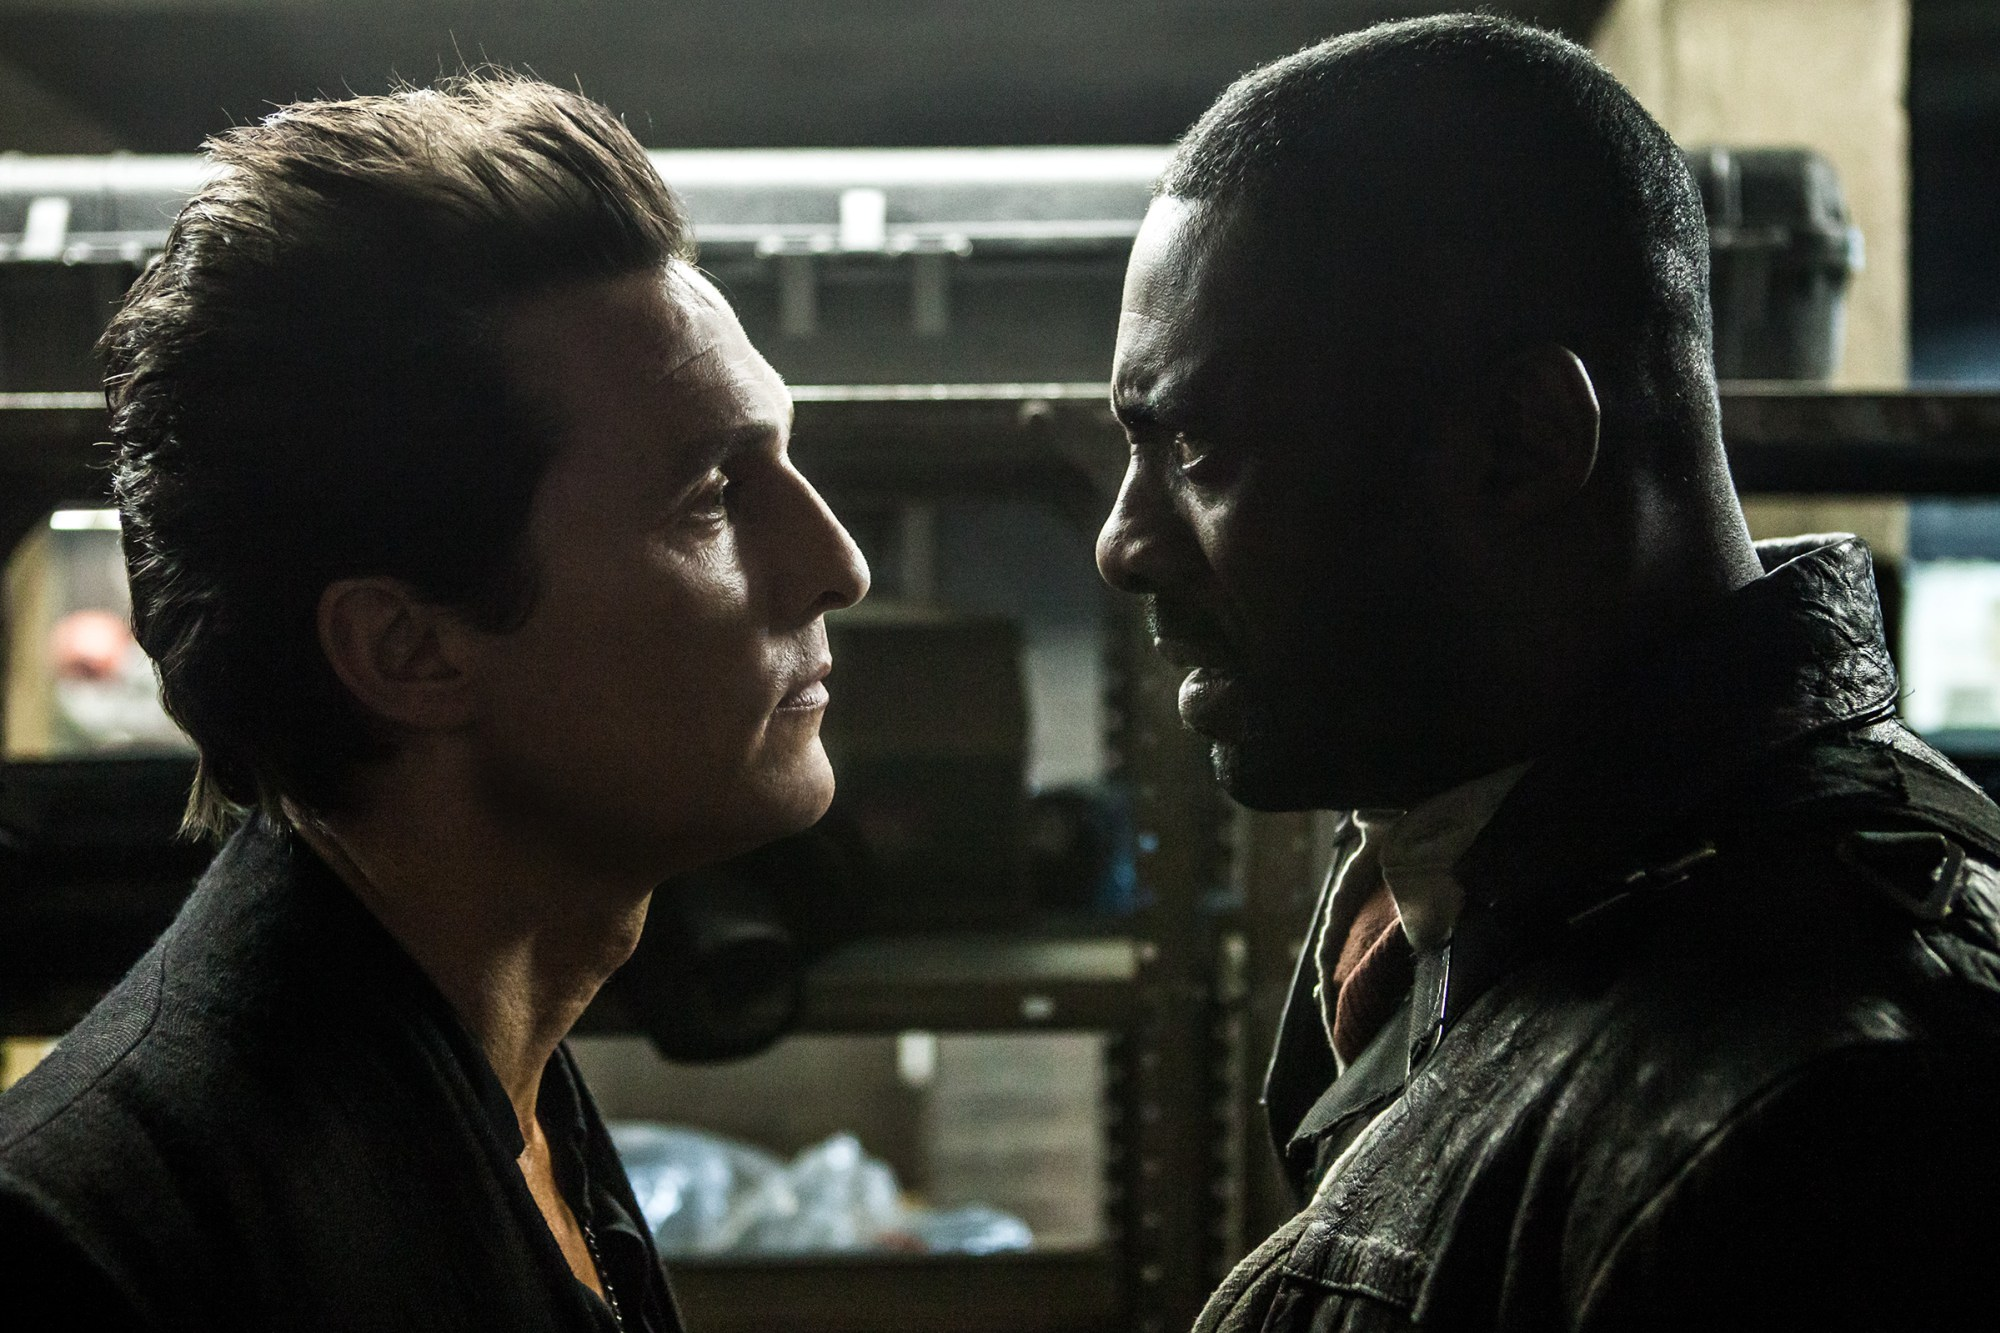 Walter (Matthew McConaughey) and Roland (Idris Elba) in The Dark Tower